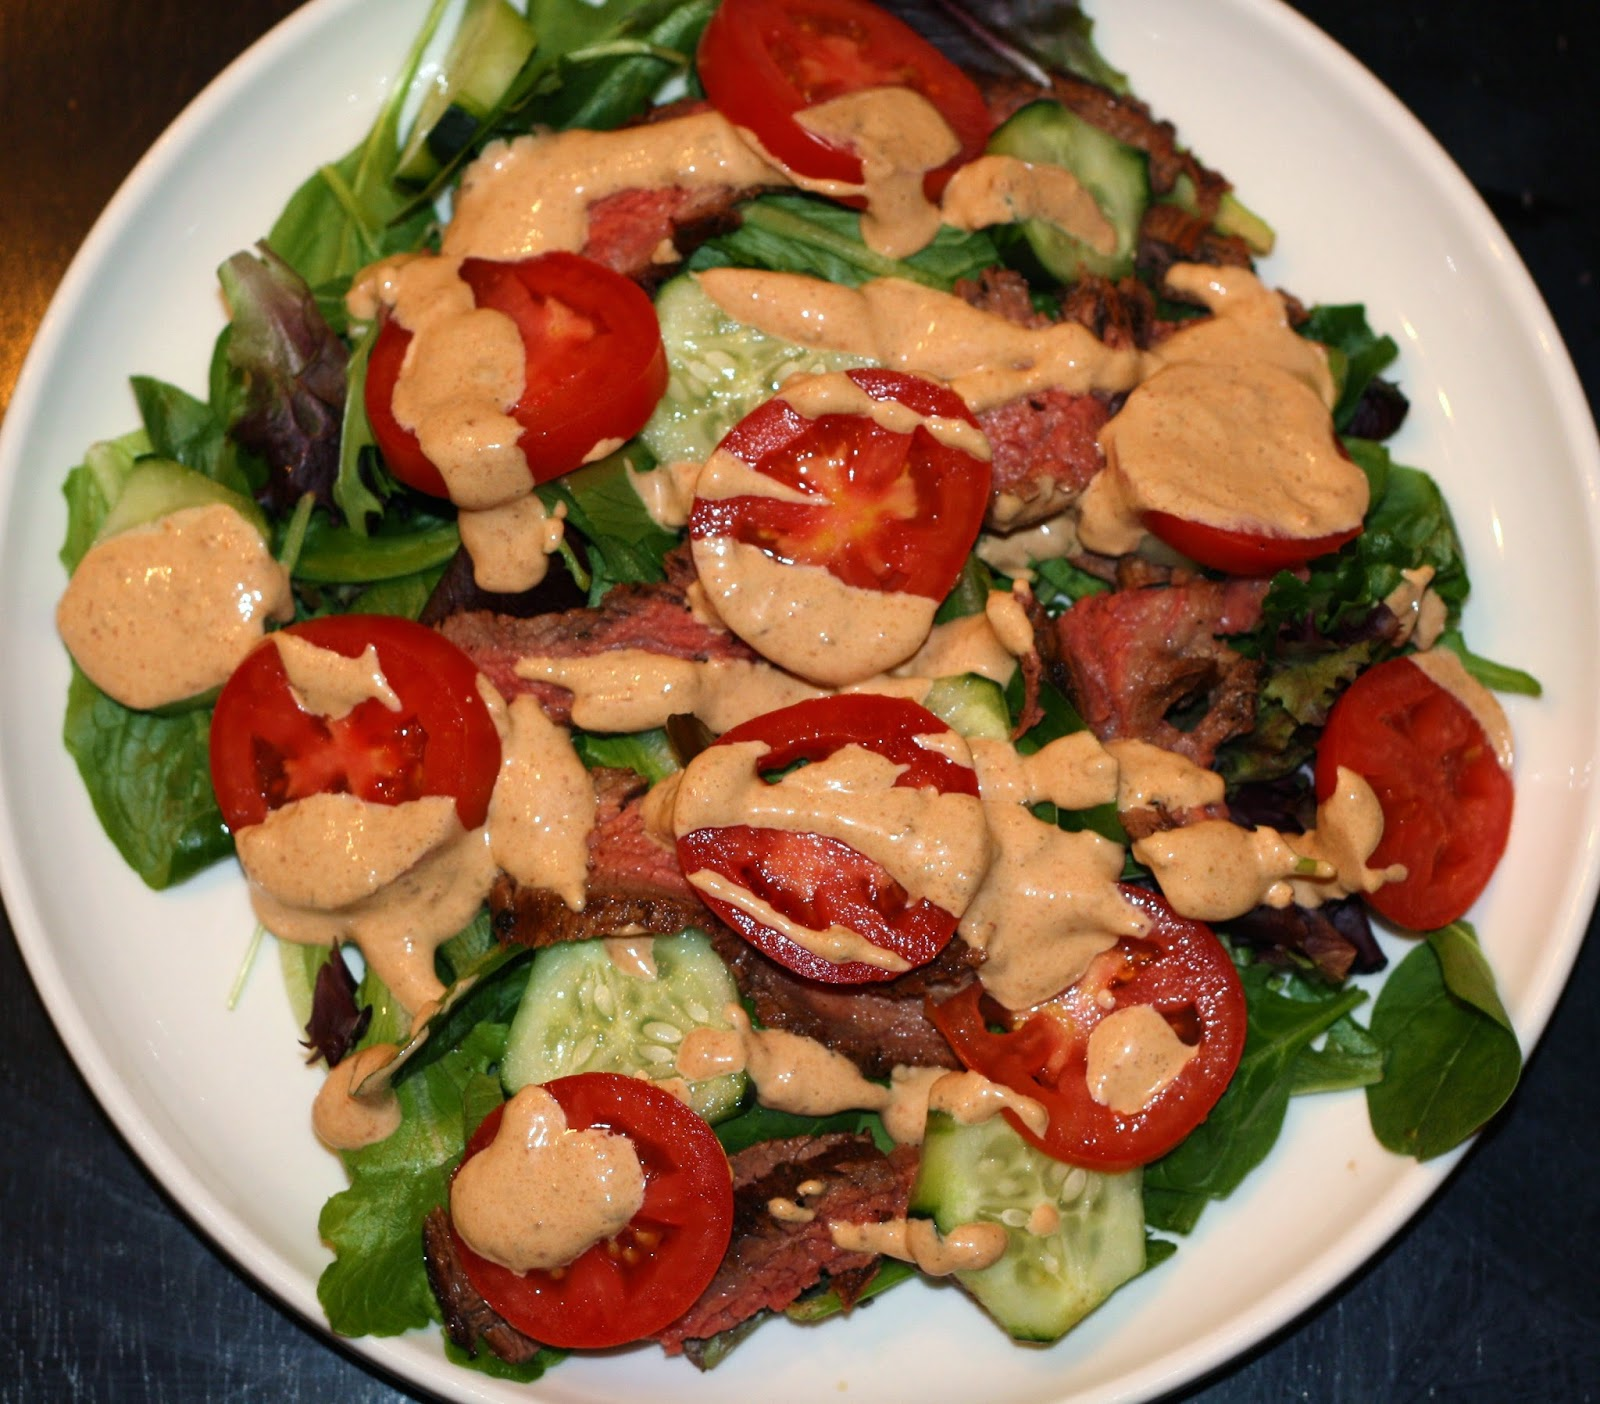 chipotle steak salad the pioneer woman chipotle steak salad recipes ...